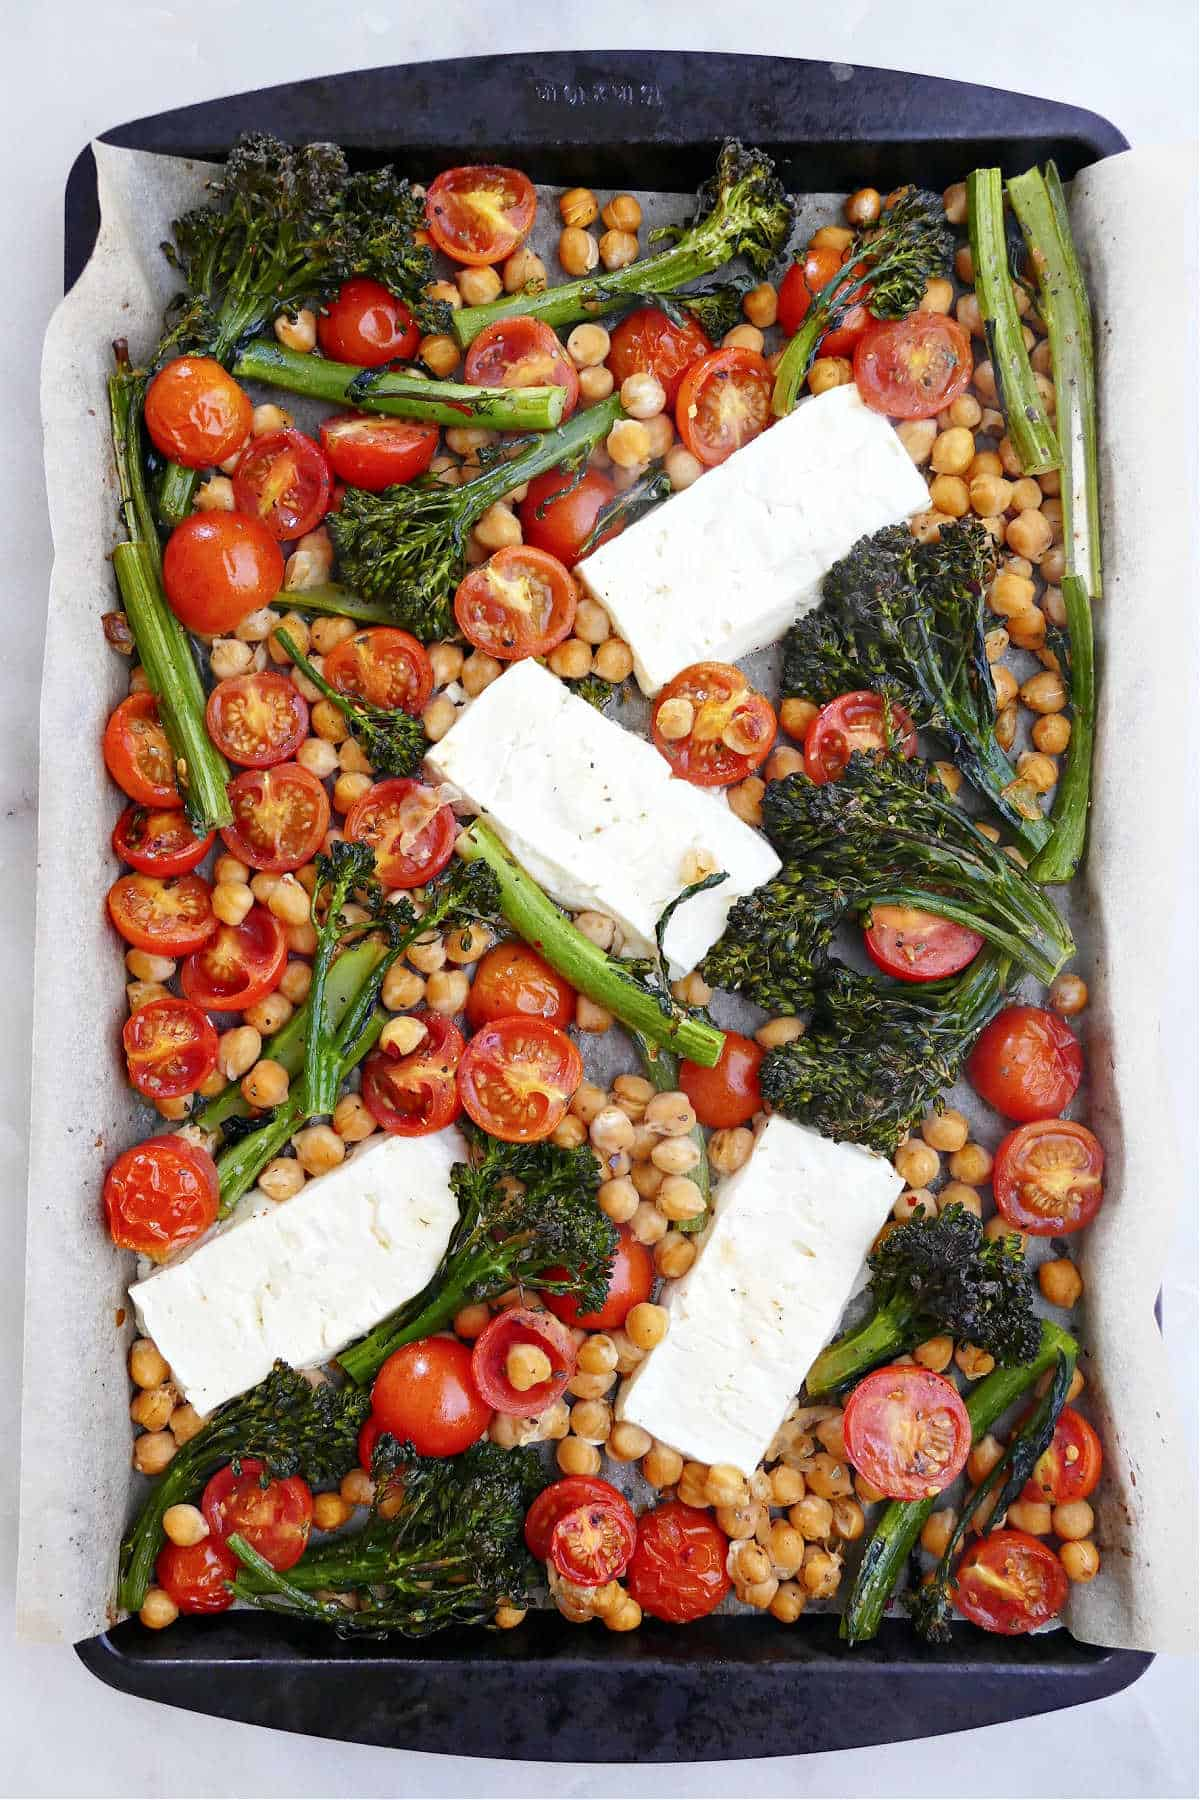 feta, vegetables, and chickpeas spread out on a baking sheet lined with parchment paper